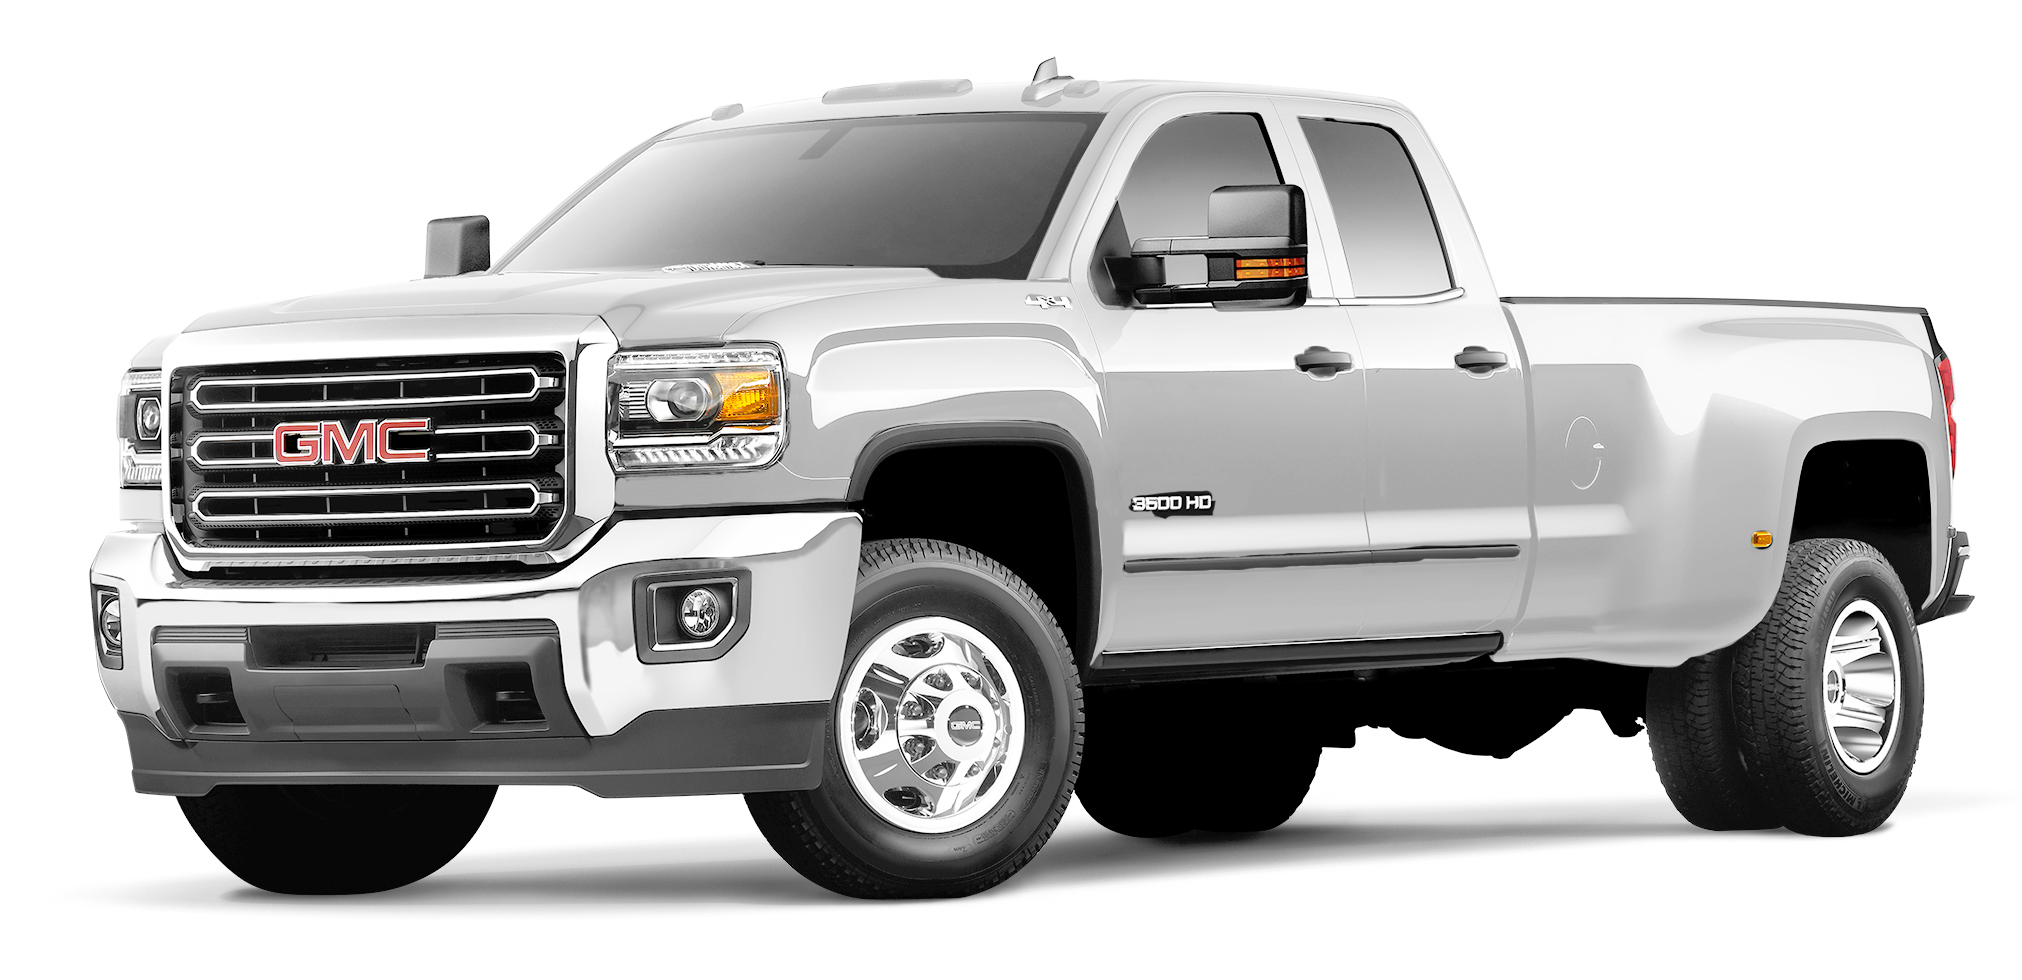 GMC Sierra 3500 HD White